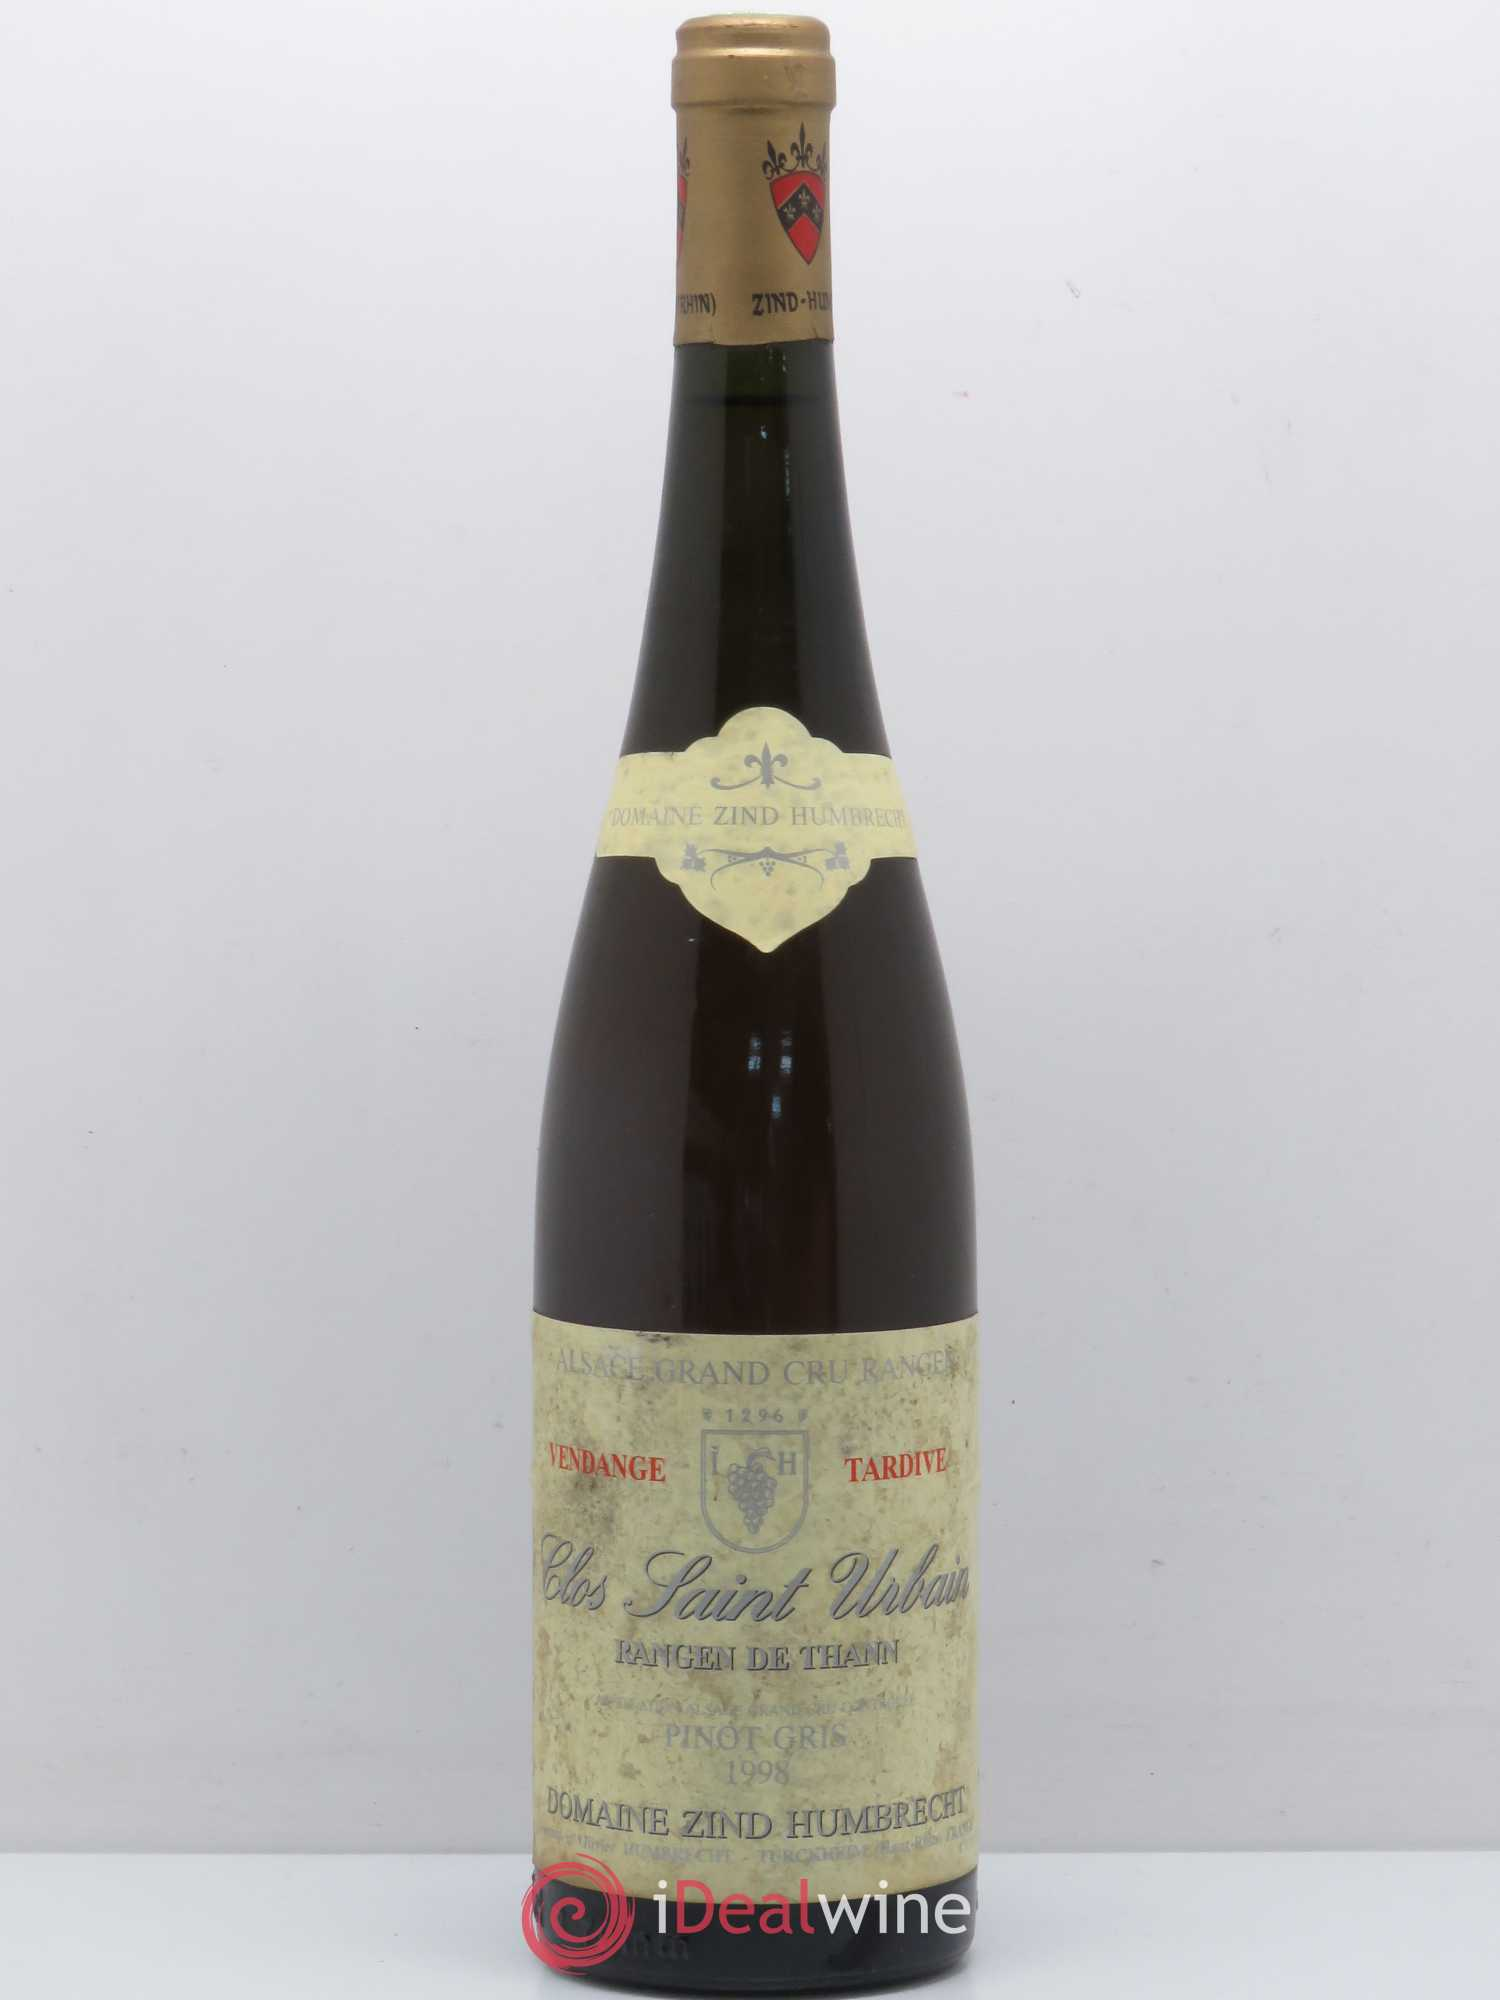 Pinot Gris Grand Cru Rangen de Thann Zind-Humbrecht (Domaine) Vendanges Tardives 1998 - Lot of 1 Bottle